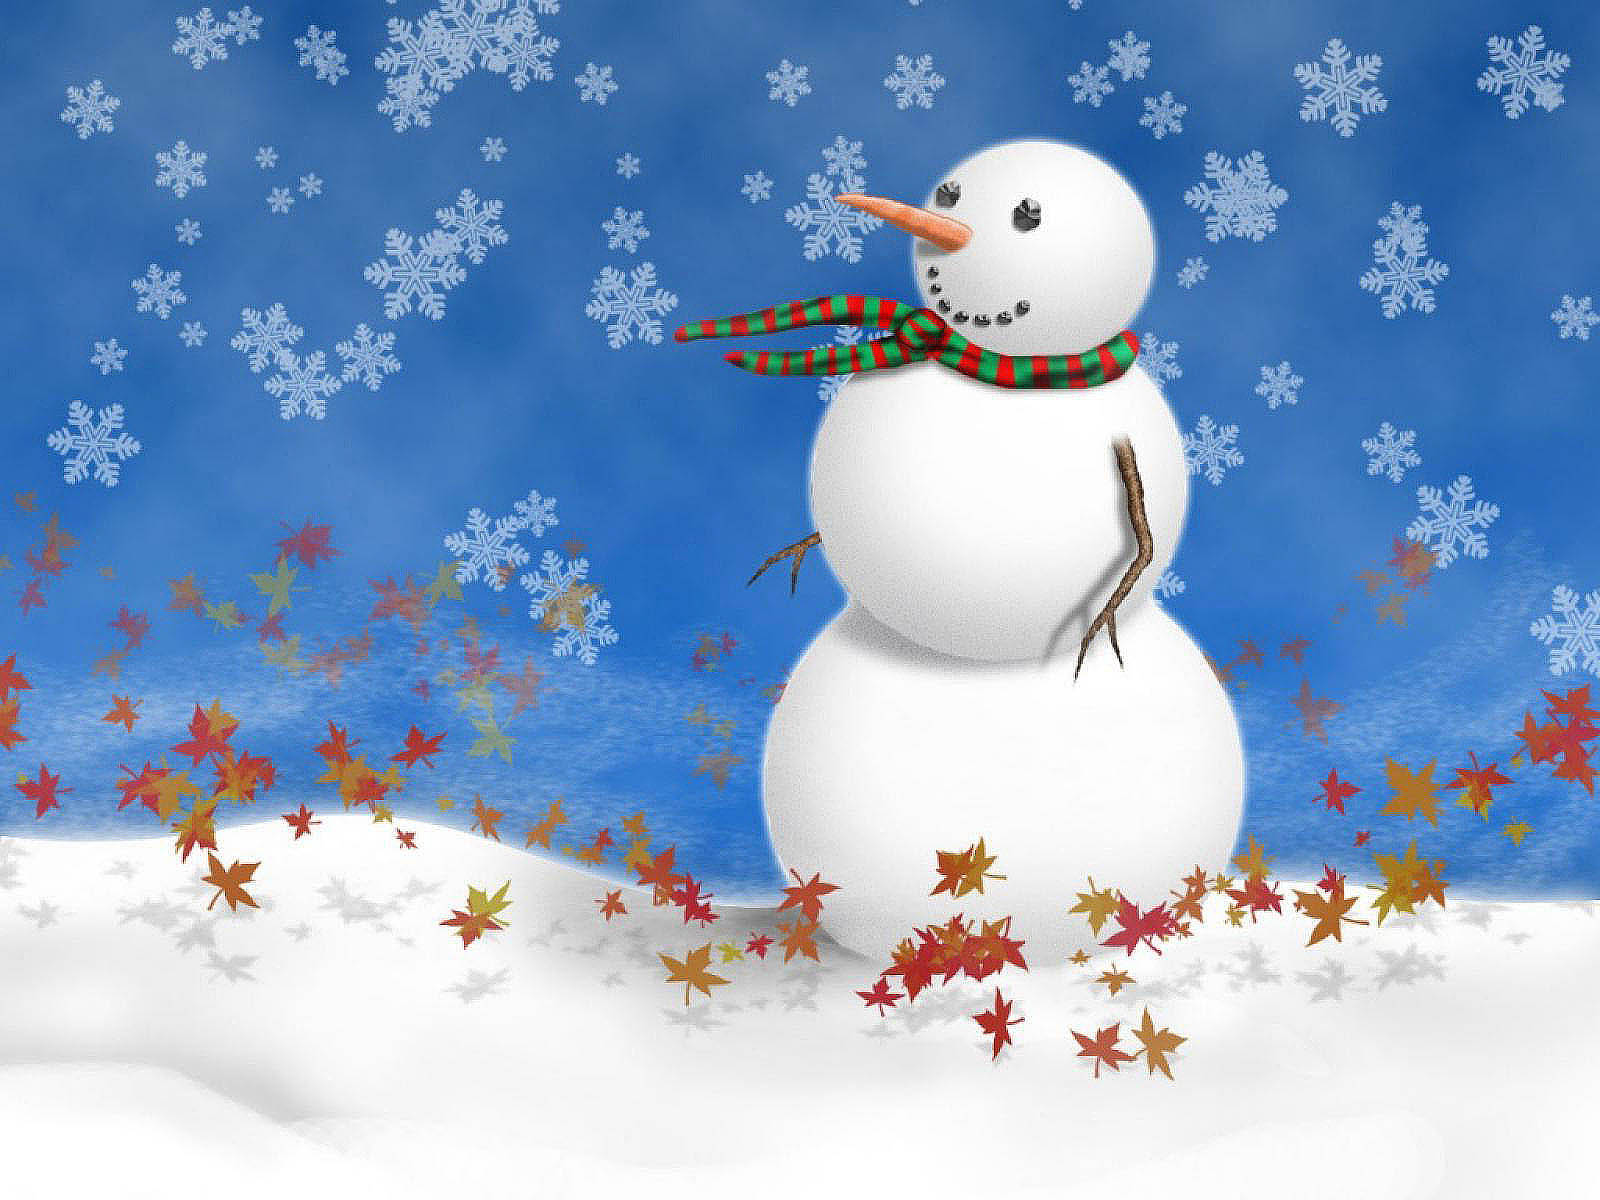 Snow Village 3d Live Wallpaper And Screensaver Snowman Wallpaper Mobile Phones 8767 Wallpaper